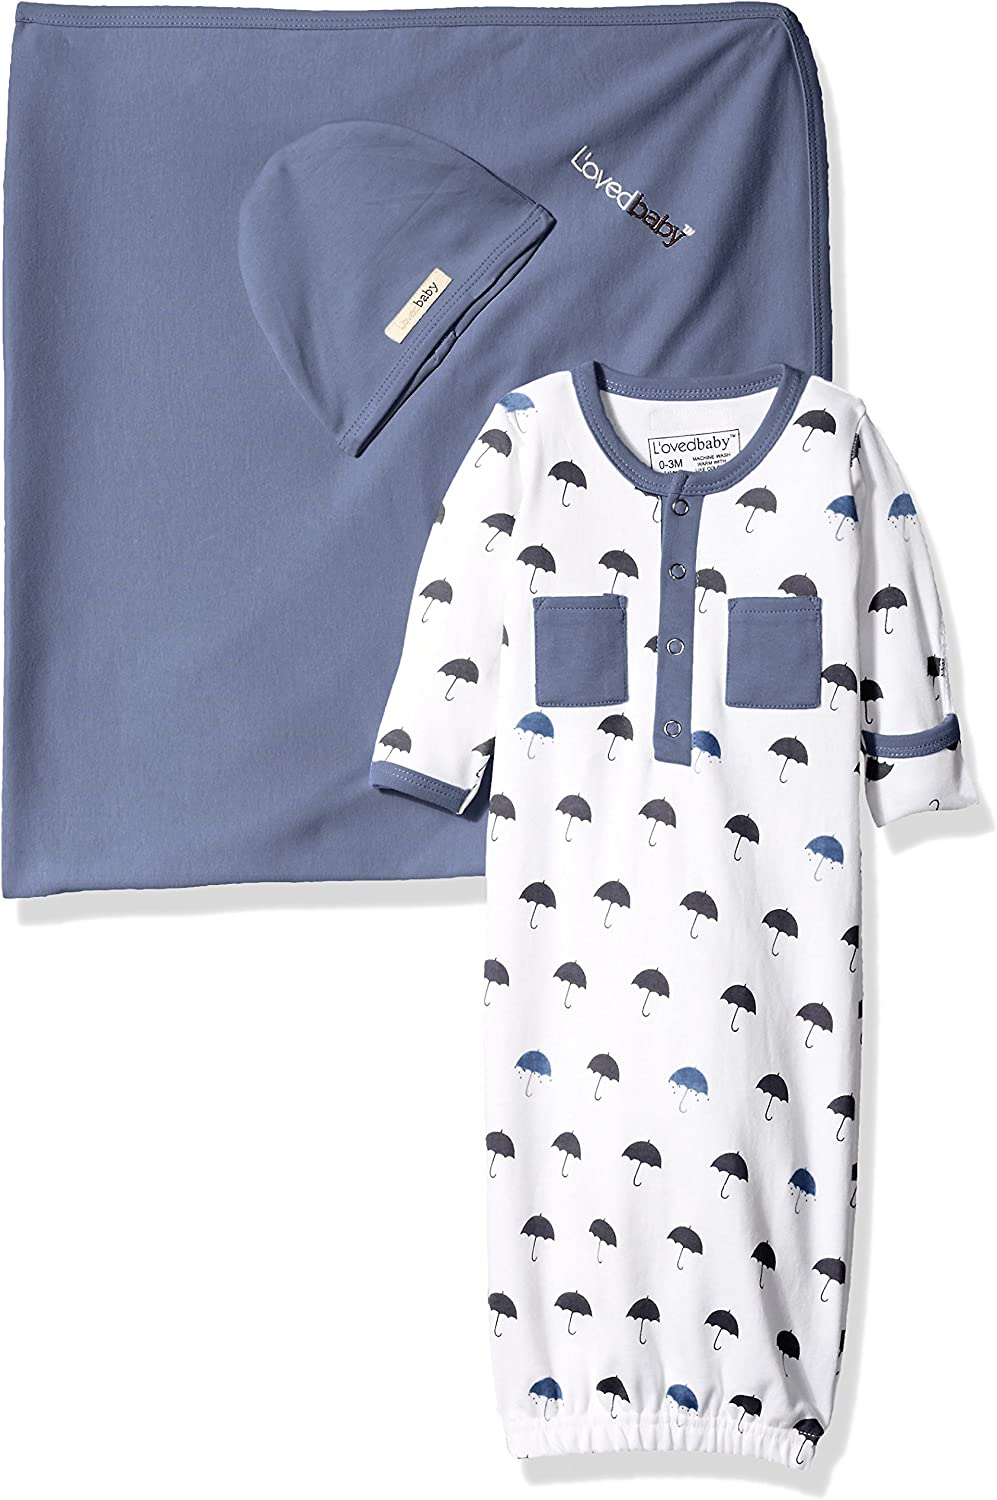 L'ovedbaby Unisex Baby Organic Cotton Blanket, Hat, and Gown